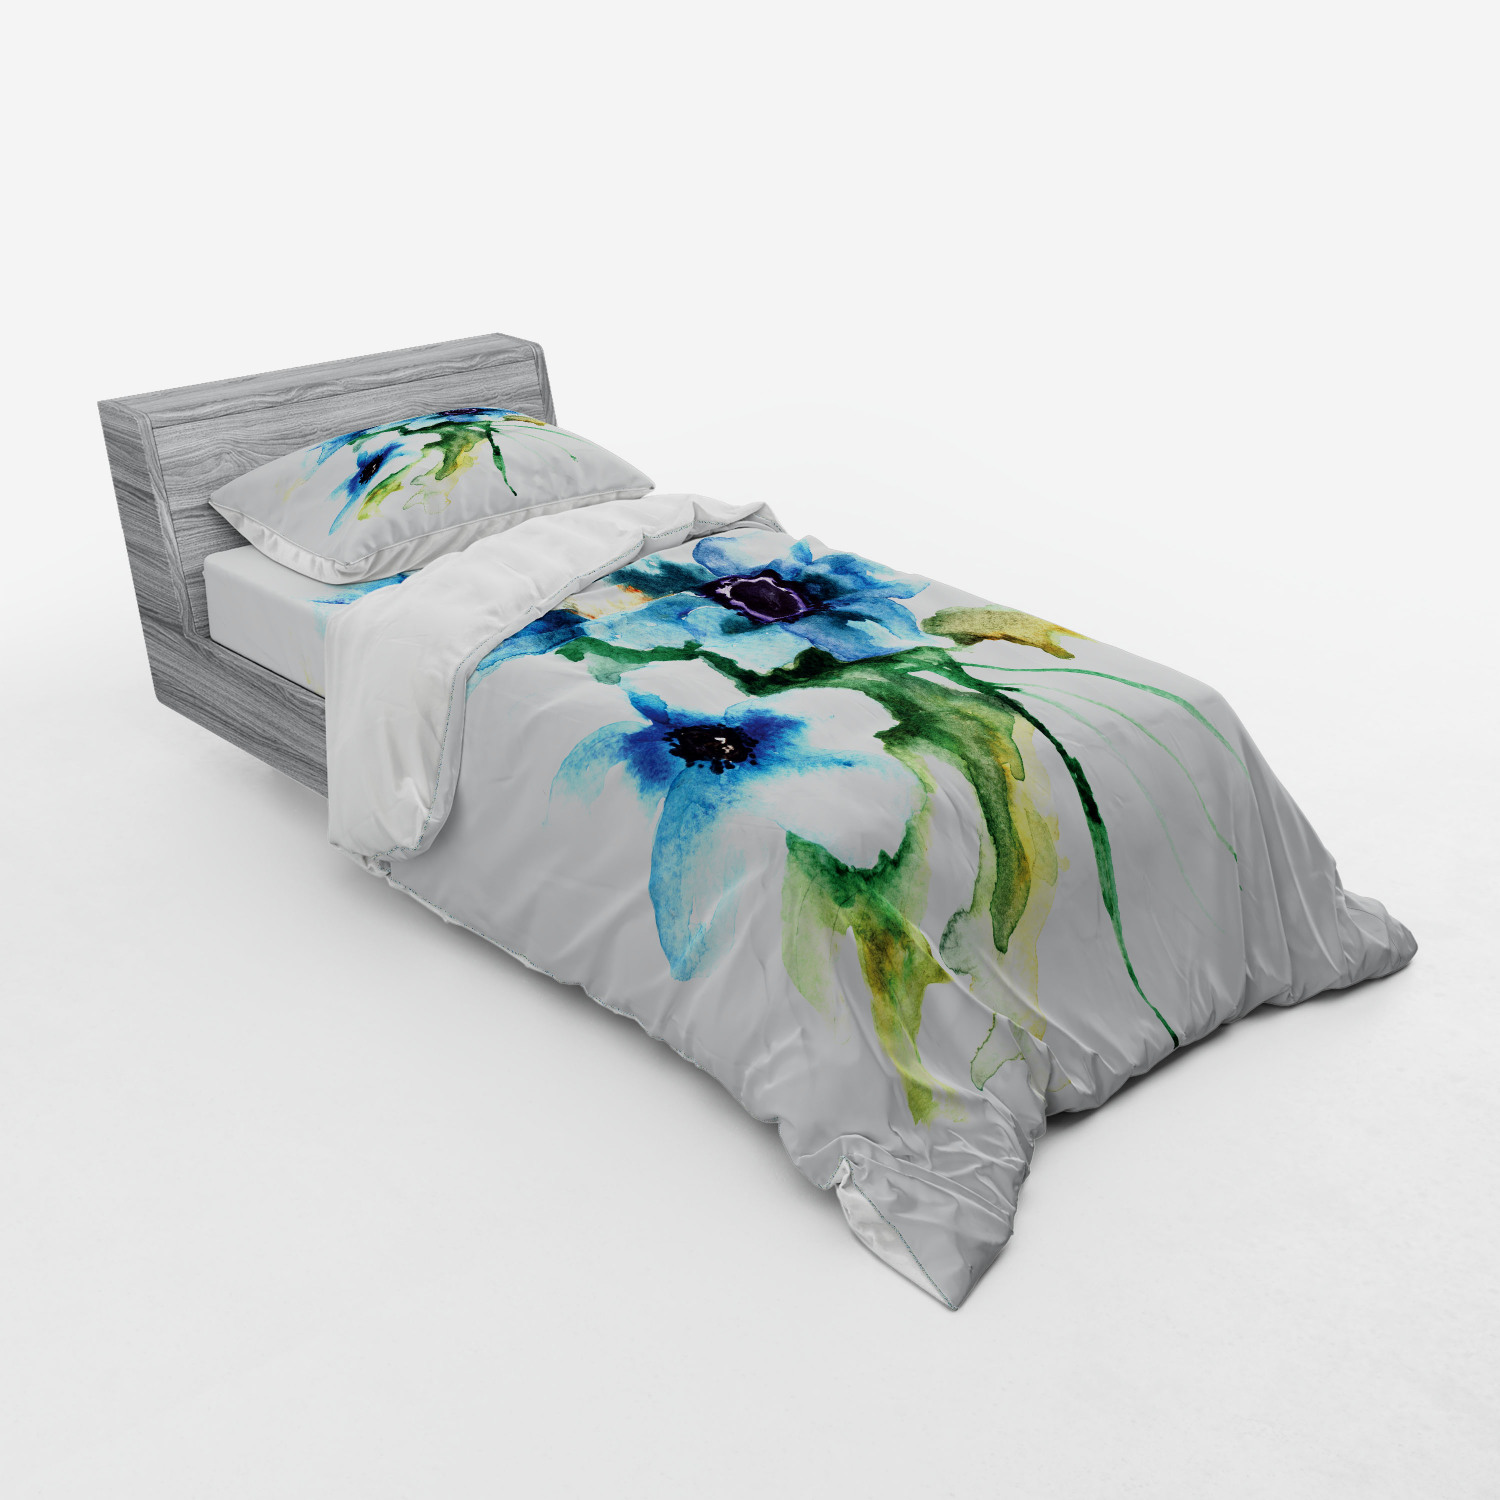 thumbnail 121 - Ambesonne Summer Bedding Set Duvet Cover Sham Fitted Sheet in 3 Sizes